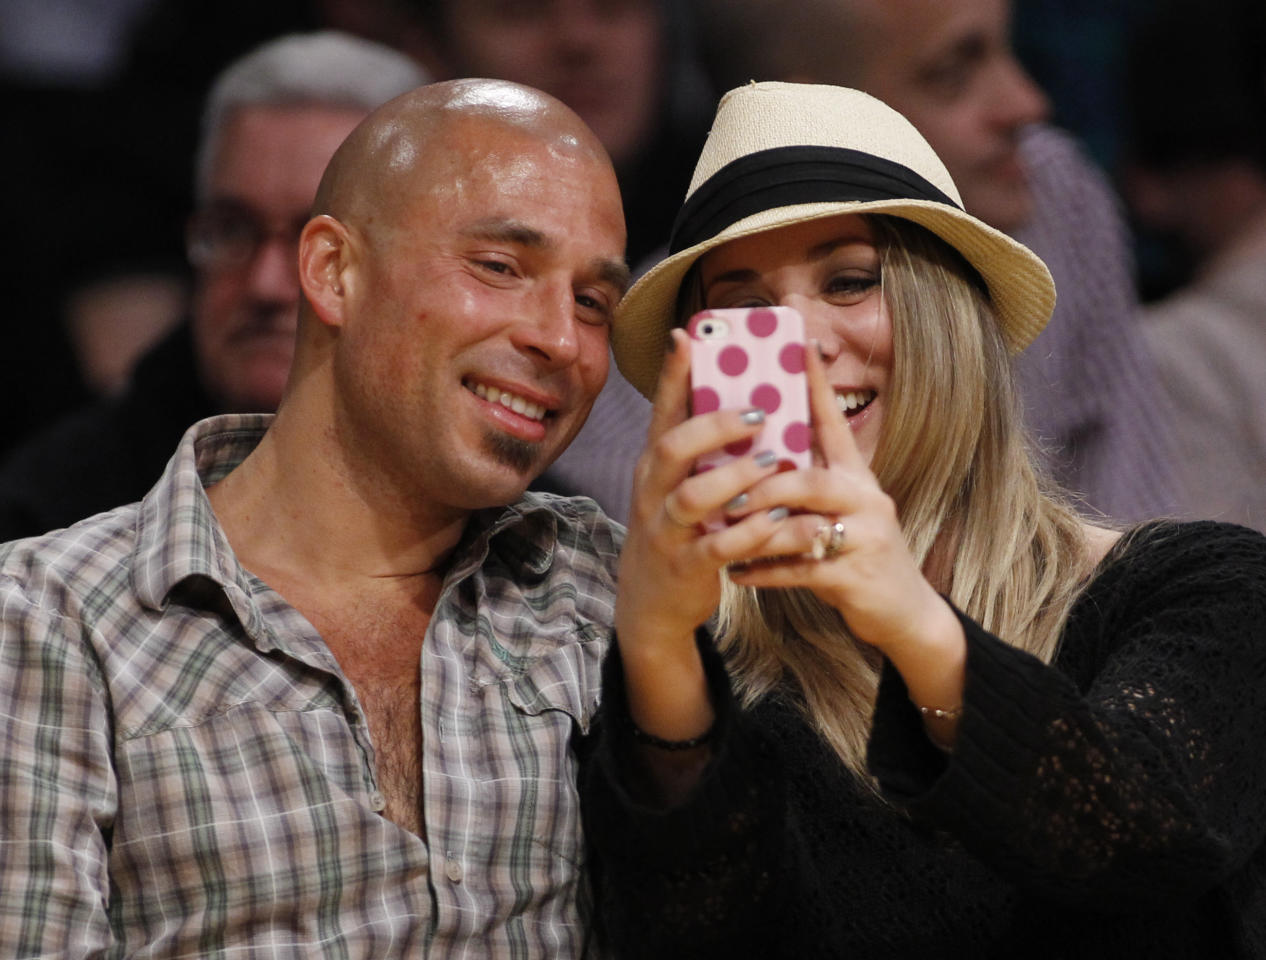 In this March 23, 2012, file photo, Actress Kaley Cuoco uses a mobile phone as she sits with an unidentified man courtside at the NBA basketball game between the Portland Trail Blazers and Los Angeles Lakers in Los Angeles. The Electronic Entertainment Expo conference, which officially starts Tuesday, June 5, 2012, in Los Angeles, is still the place to showcase all the big blockbusters and flashy console games, but games for smartphones and tablets are increasingly in the minds of game developers. (AP Photo/Danny Moloshok, File)